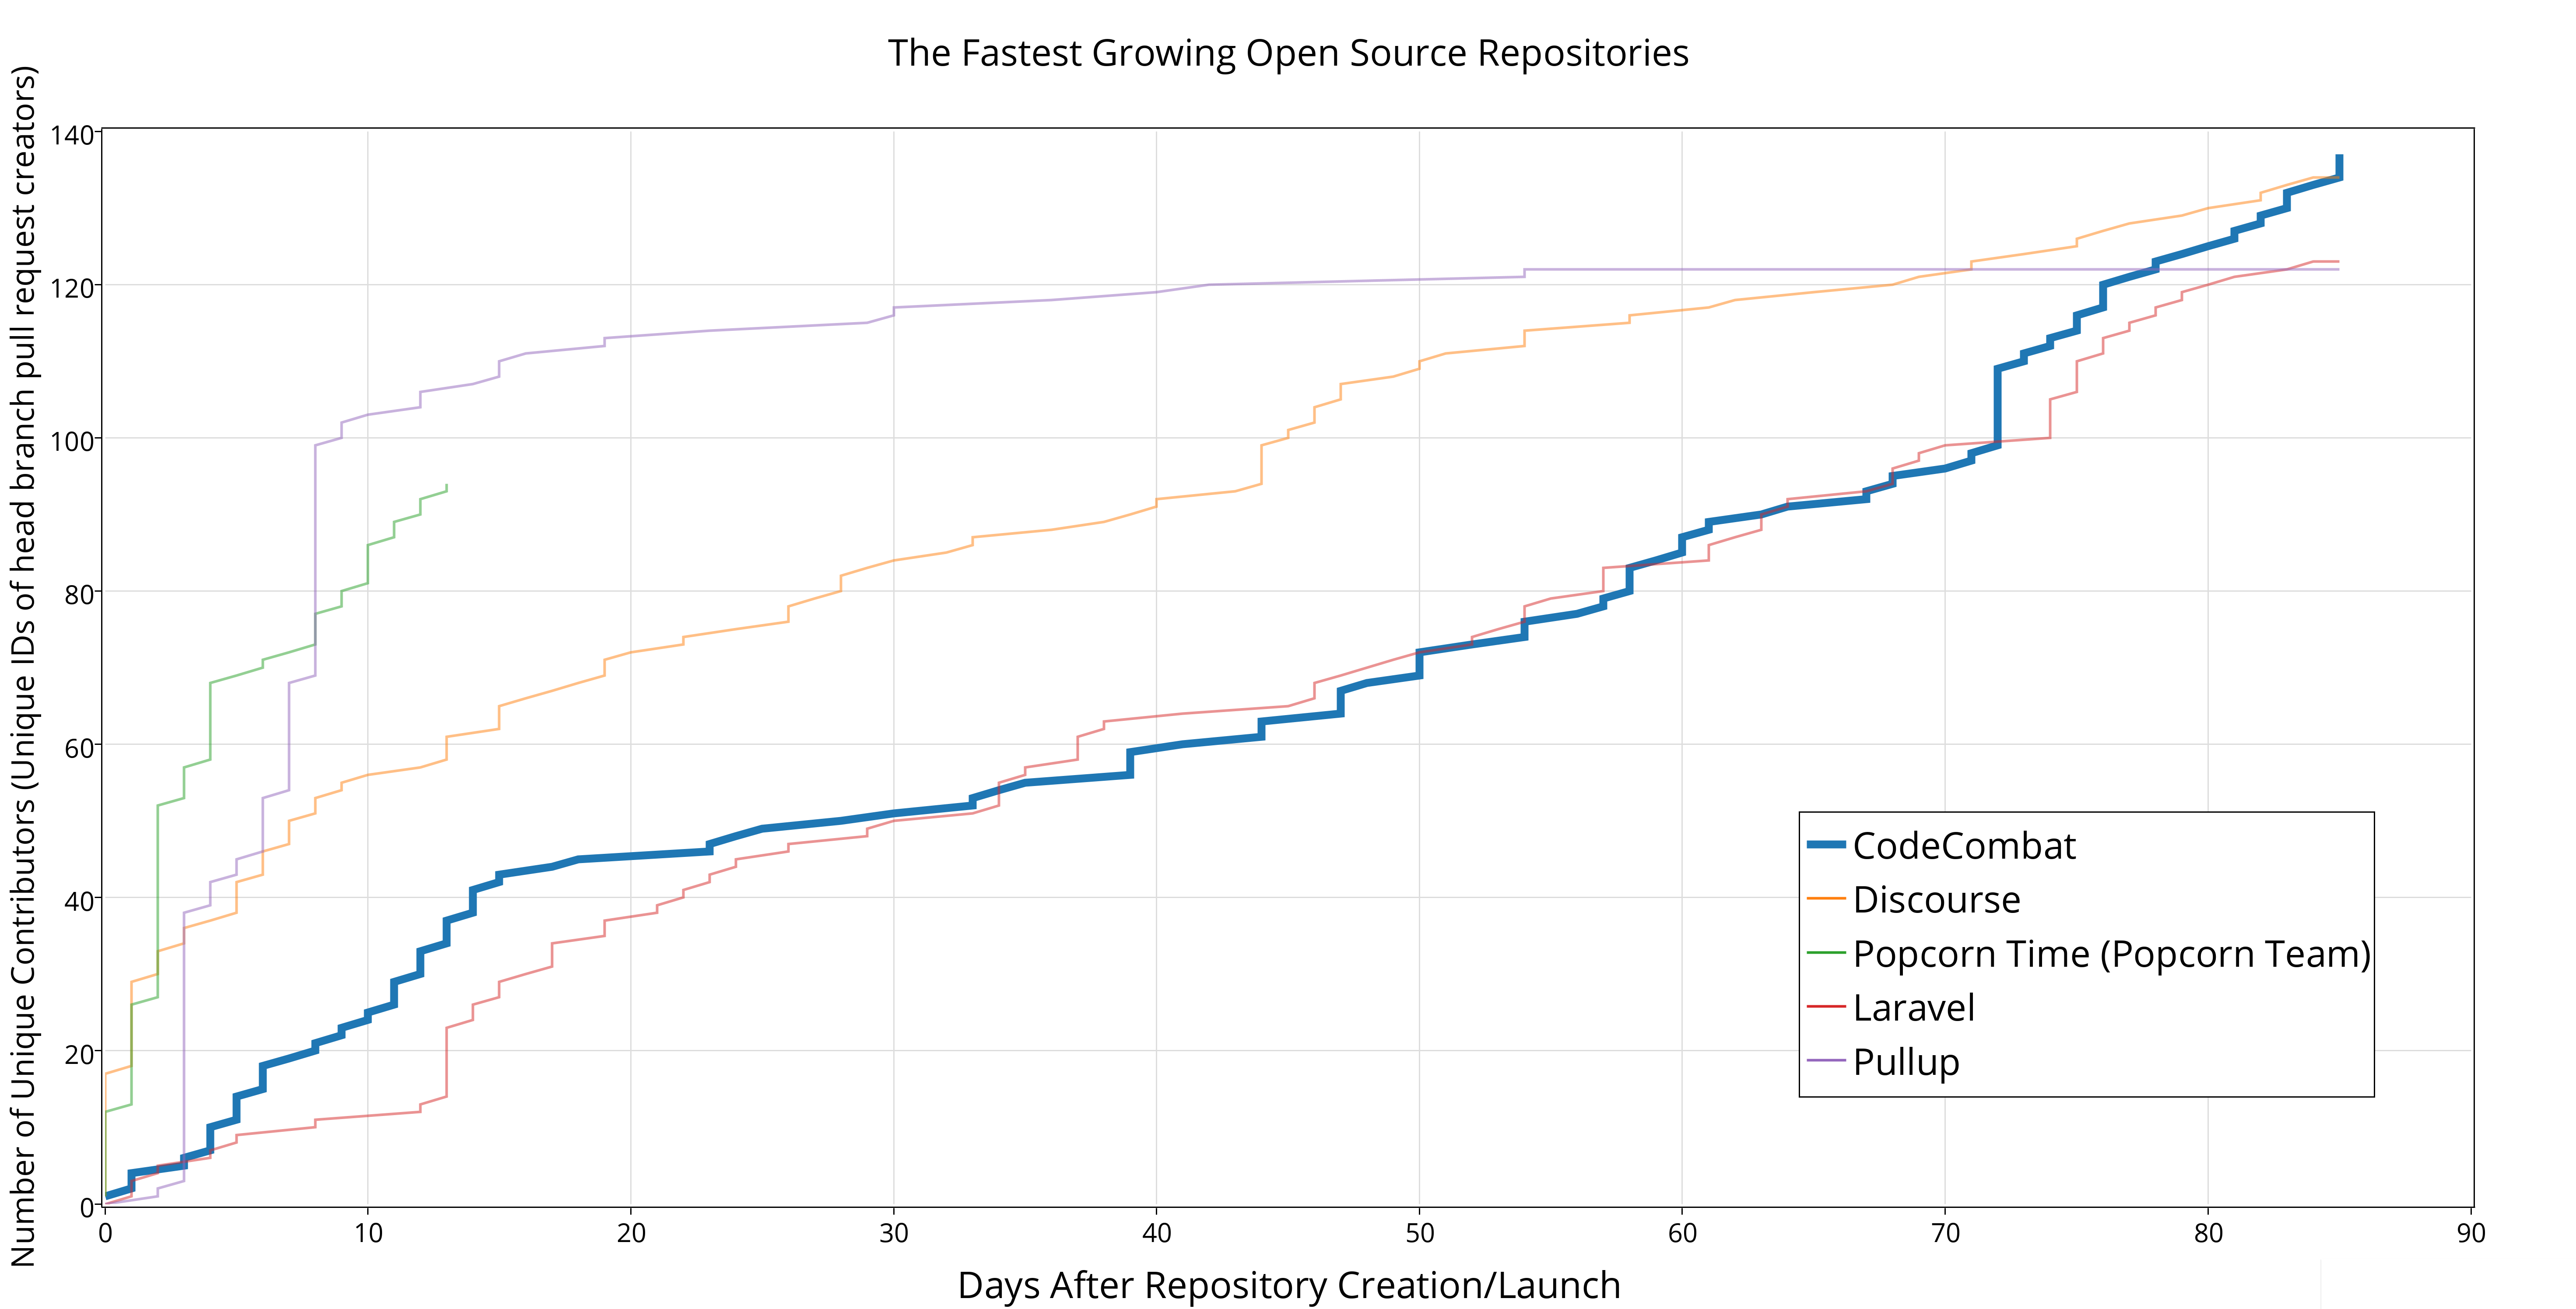 Fastest Growing Open Source Repositories